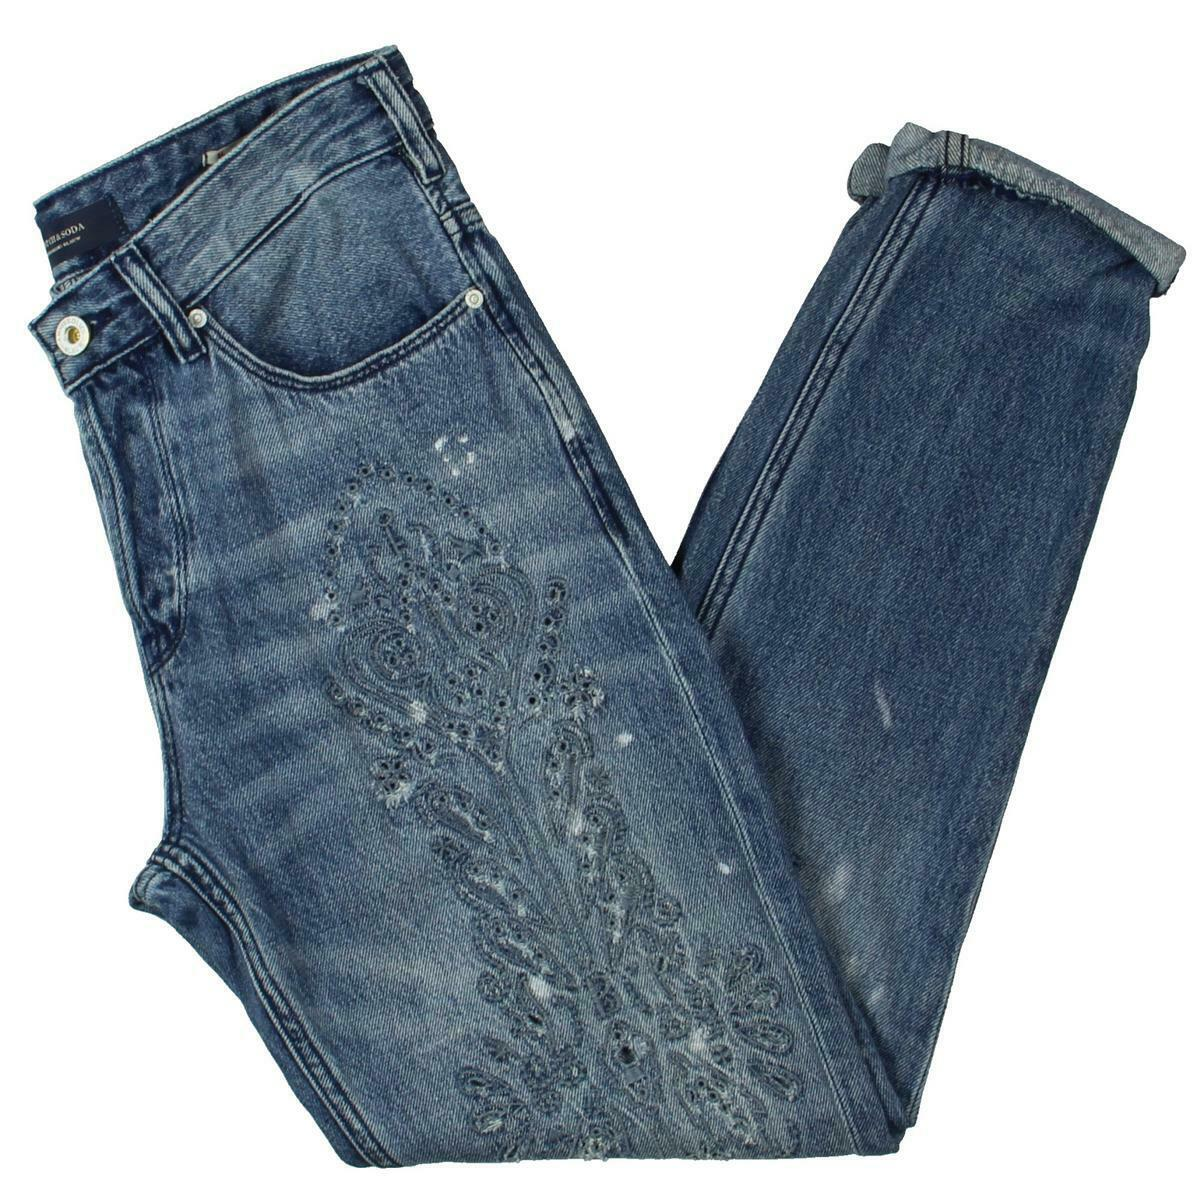 Scotch & Soda Womens L'Adorable bluee Denim Boyfriend Jeans 27 32 BHFO 4995